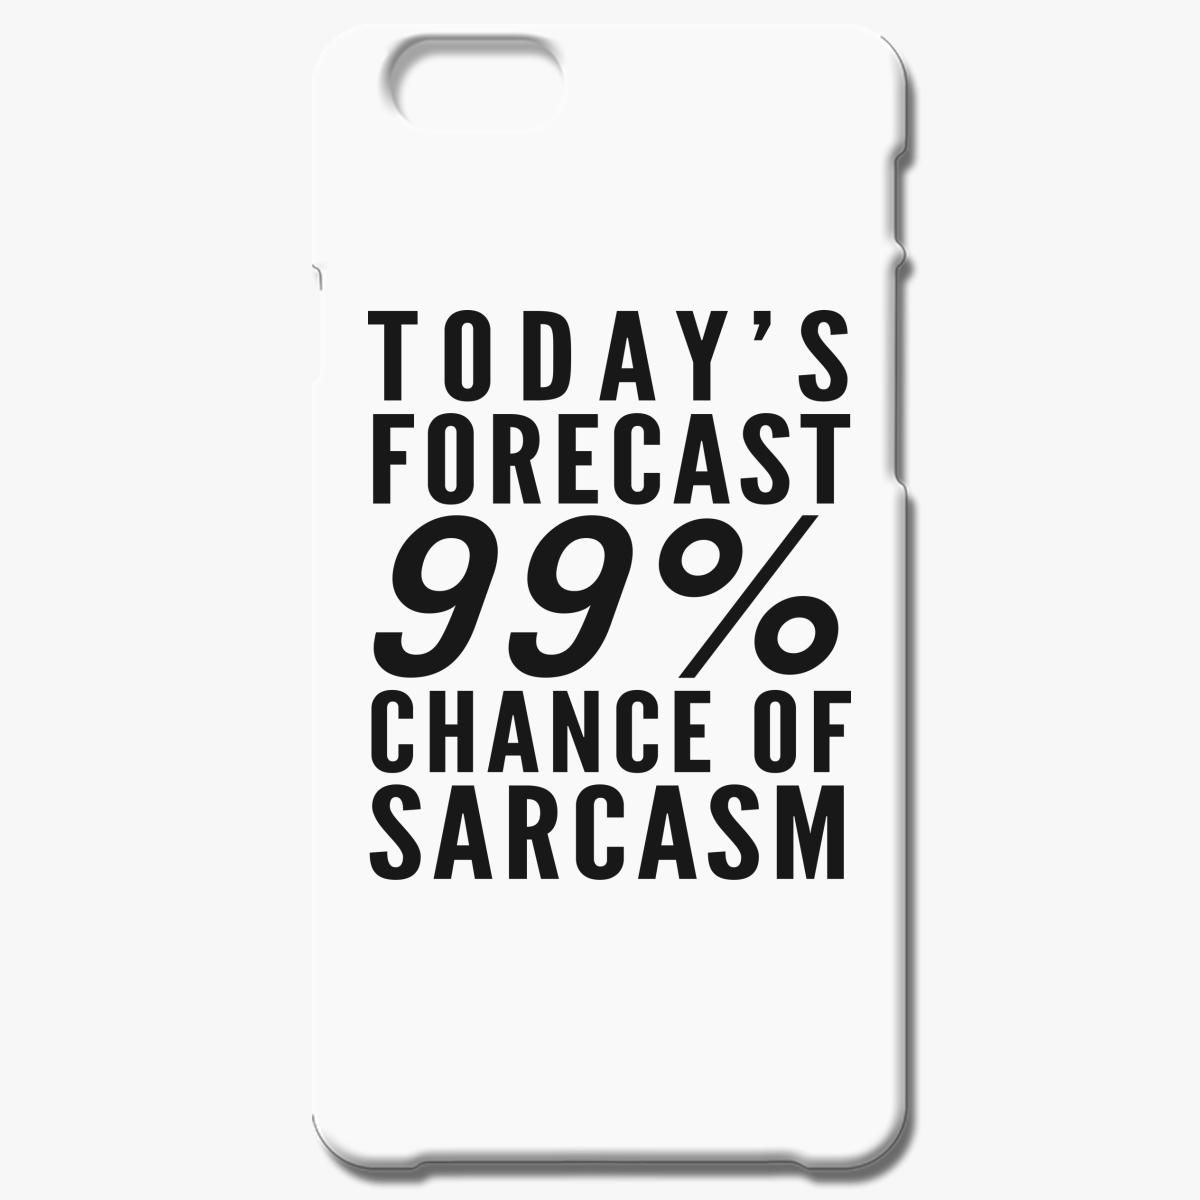 Today's Forecast 99% Chance Of Sarcasm IPhone 6/6S Case